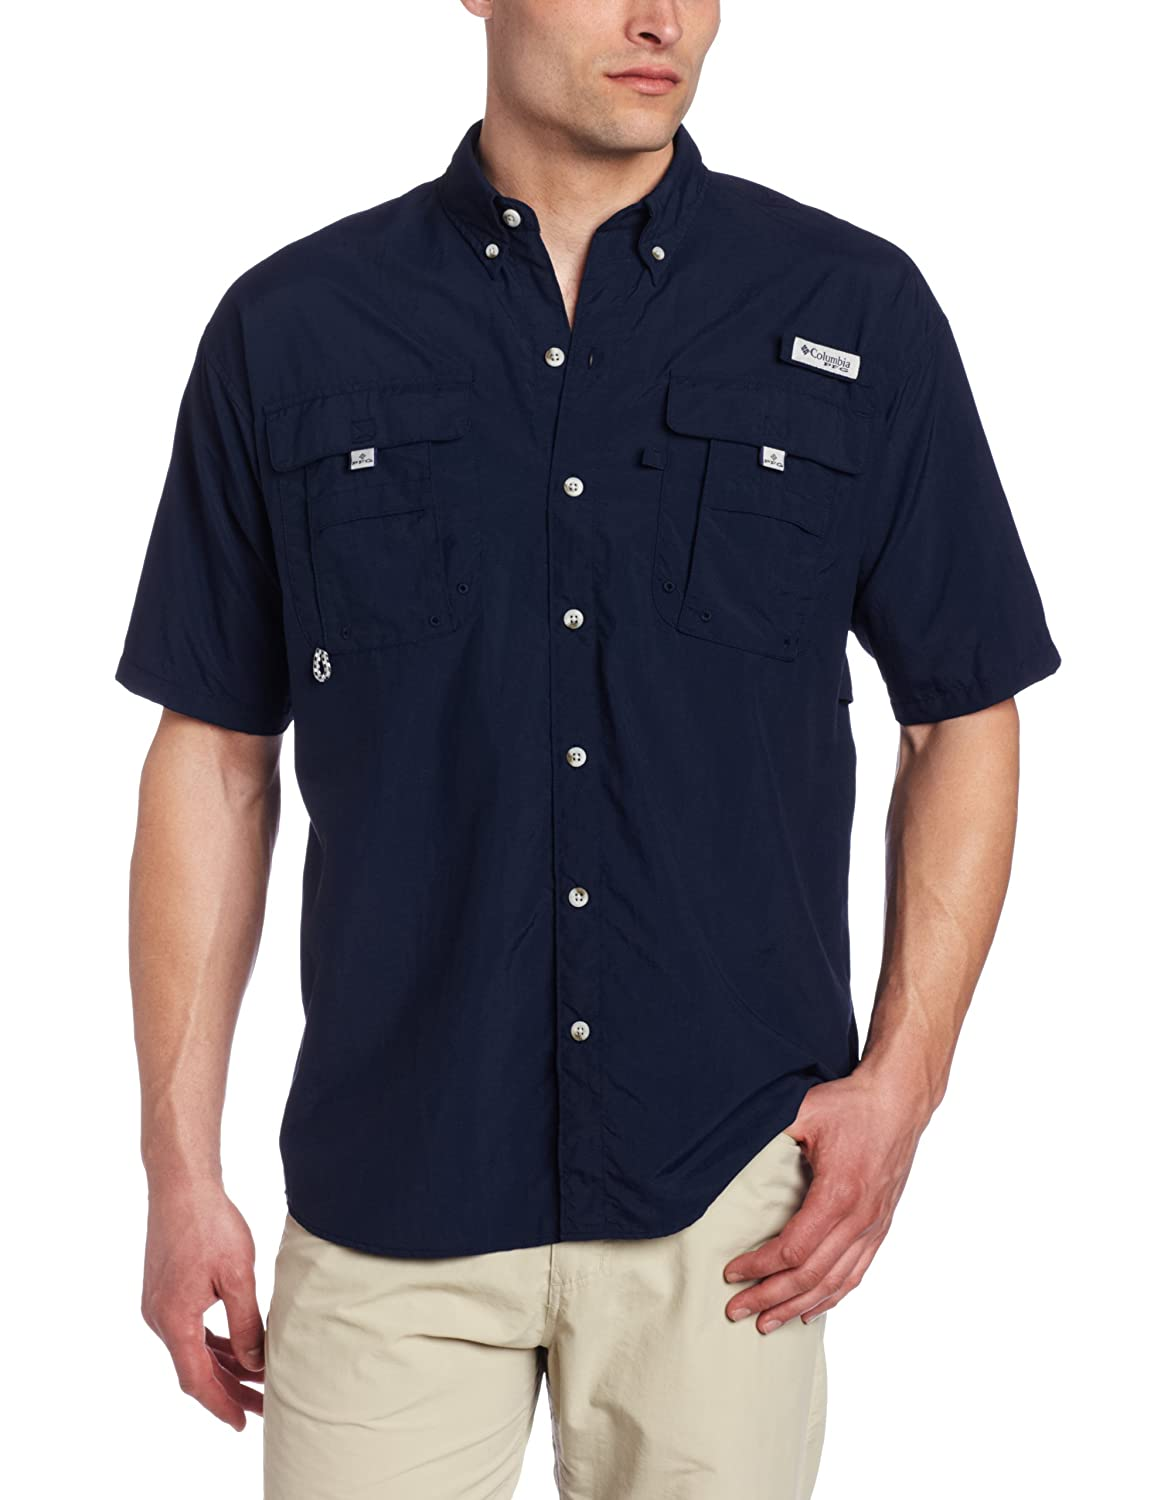 Amazon.com : Columbia Men's Bahama II Short-Sleeve Shirt : Button Down Shirts